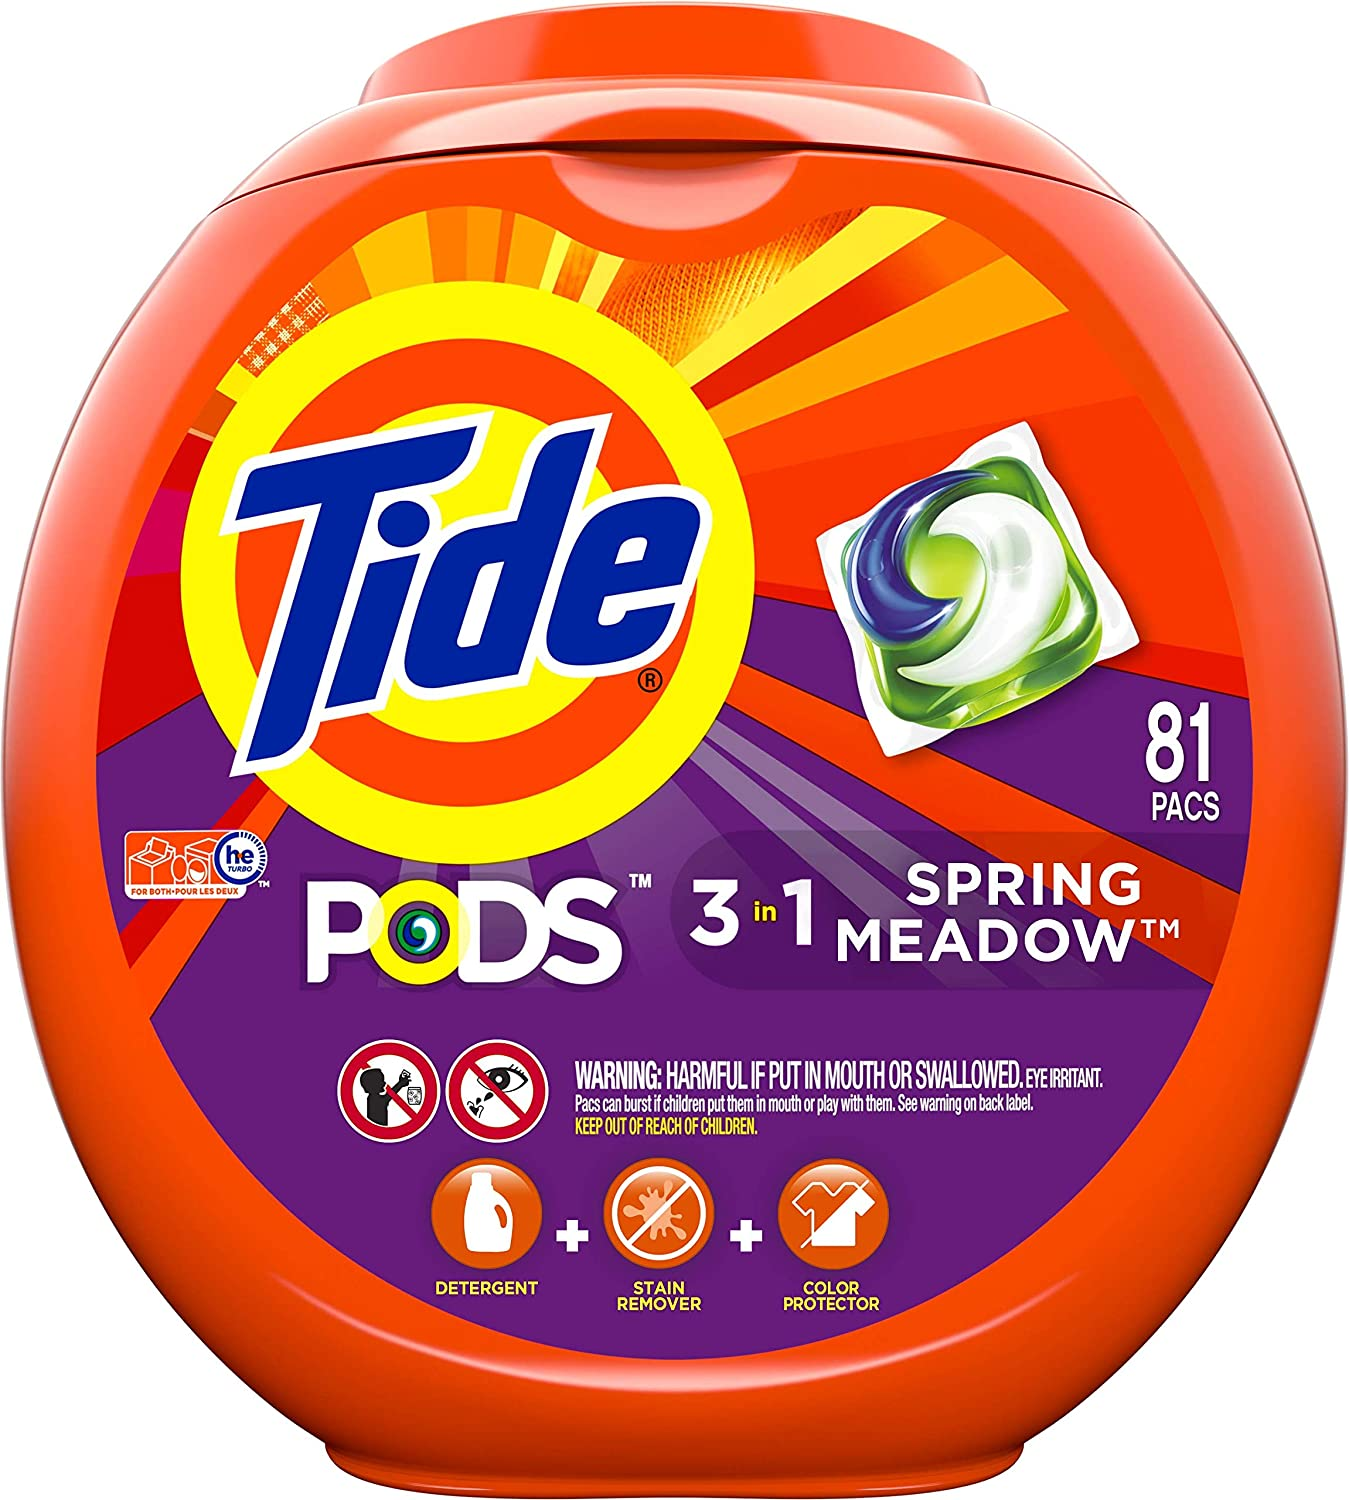 Tod Pods